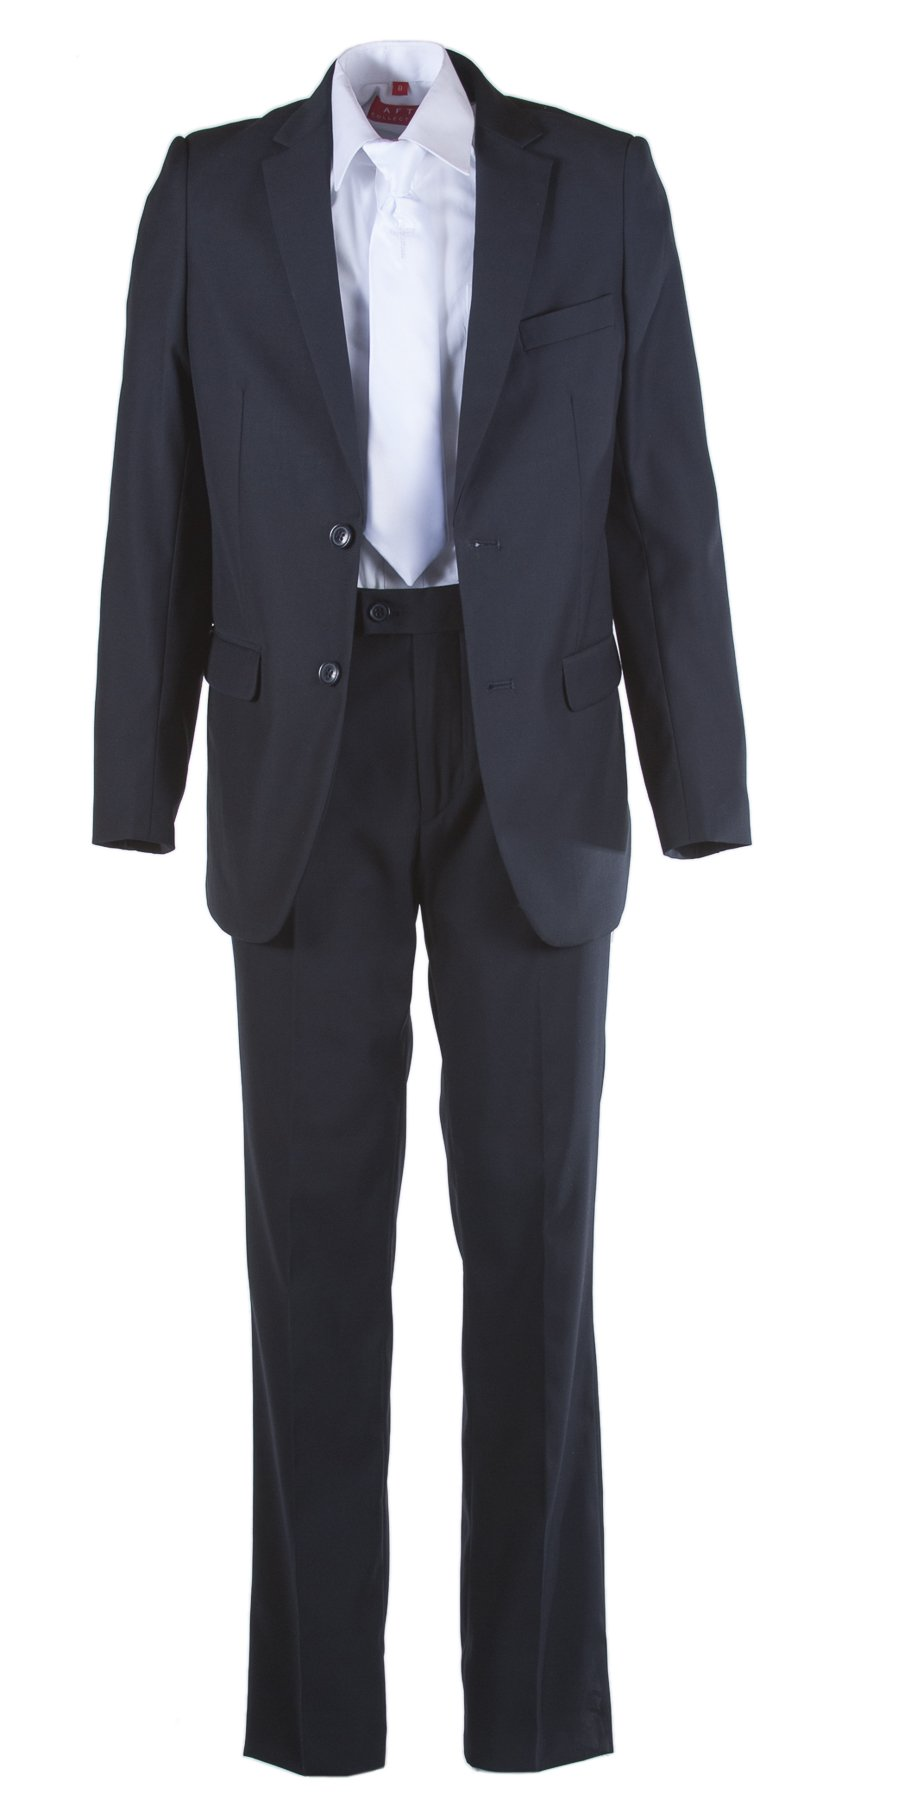 Boys Slim Fit Navy Communion Suit White Religious Cross Tie & Suspenders (10 Boys)